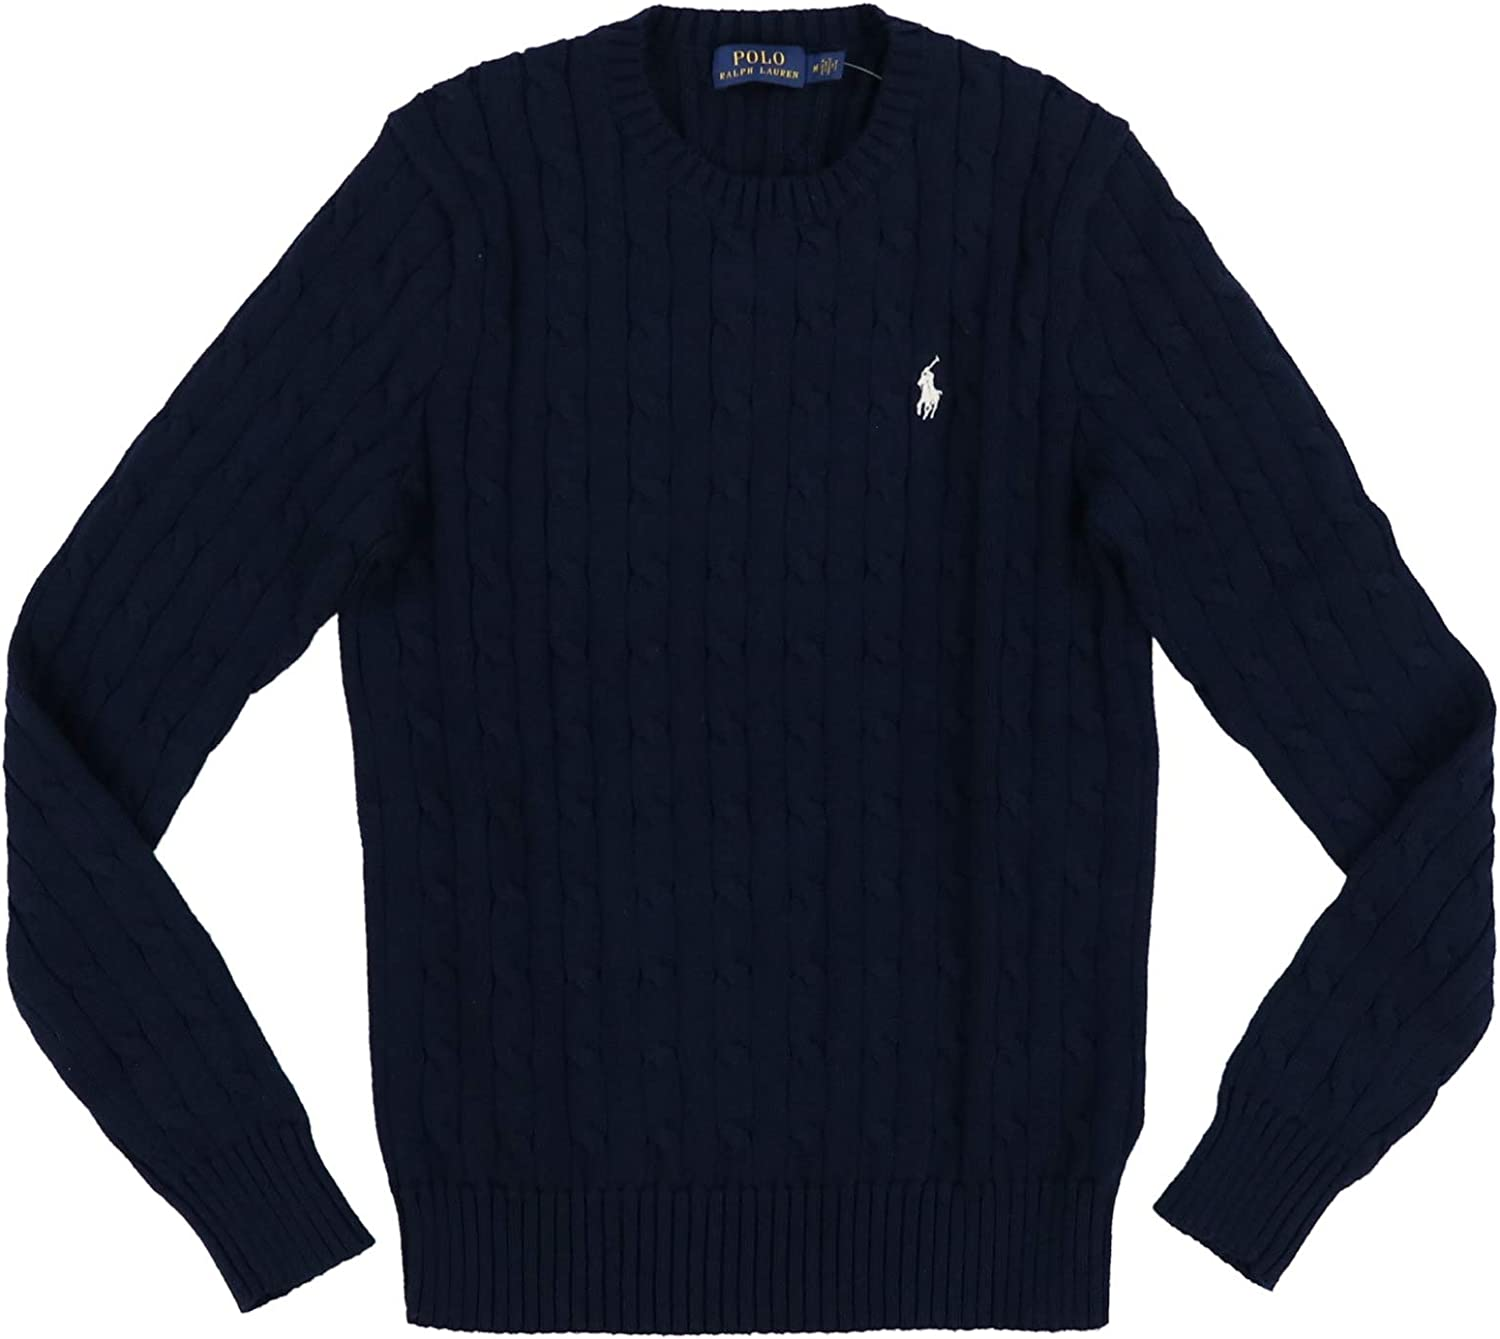 Polo Ralph Lauren Womens Cable Knit Crew Neck Sweater (X-Large, PRL Navy)